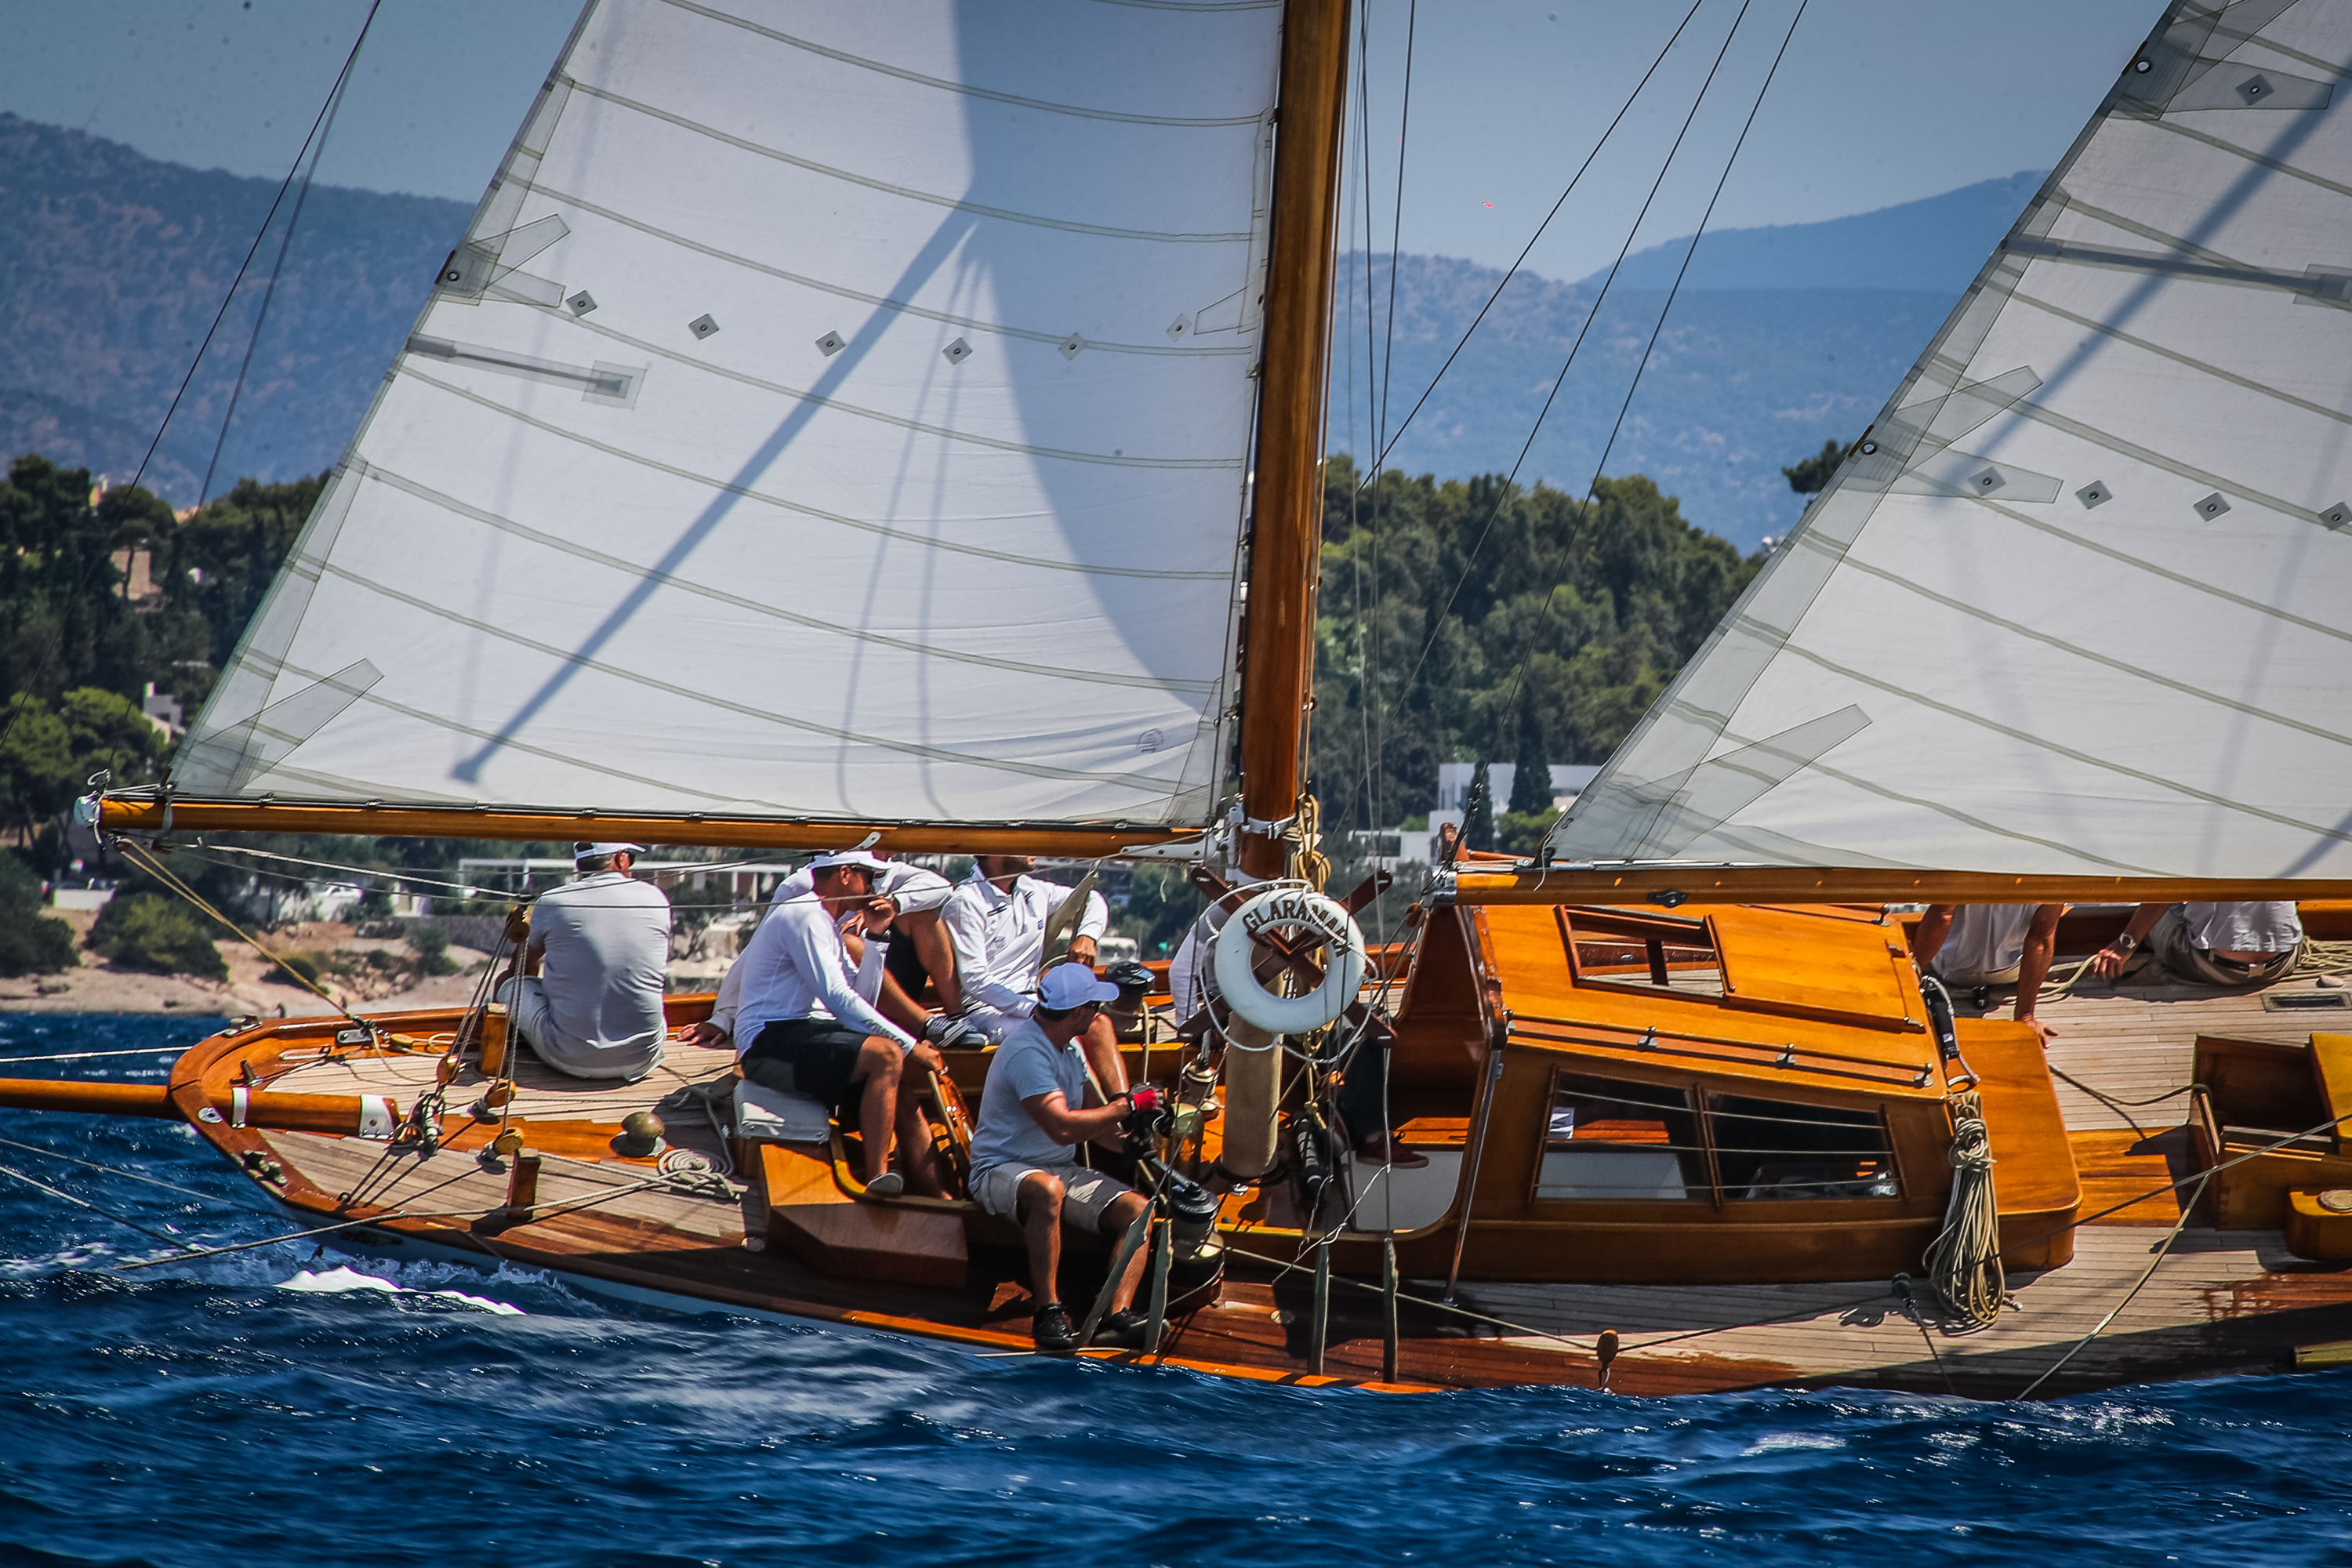 Amvyx The 9th Spetses Classic Yacht Regatta went for the gold!